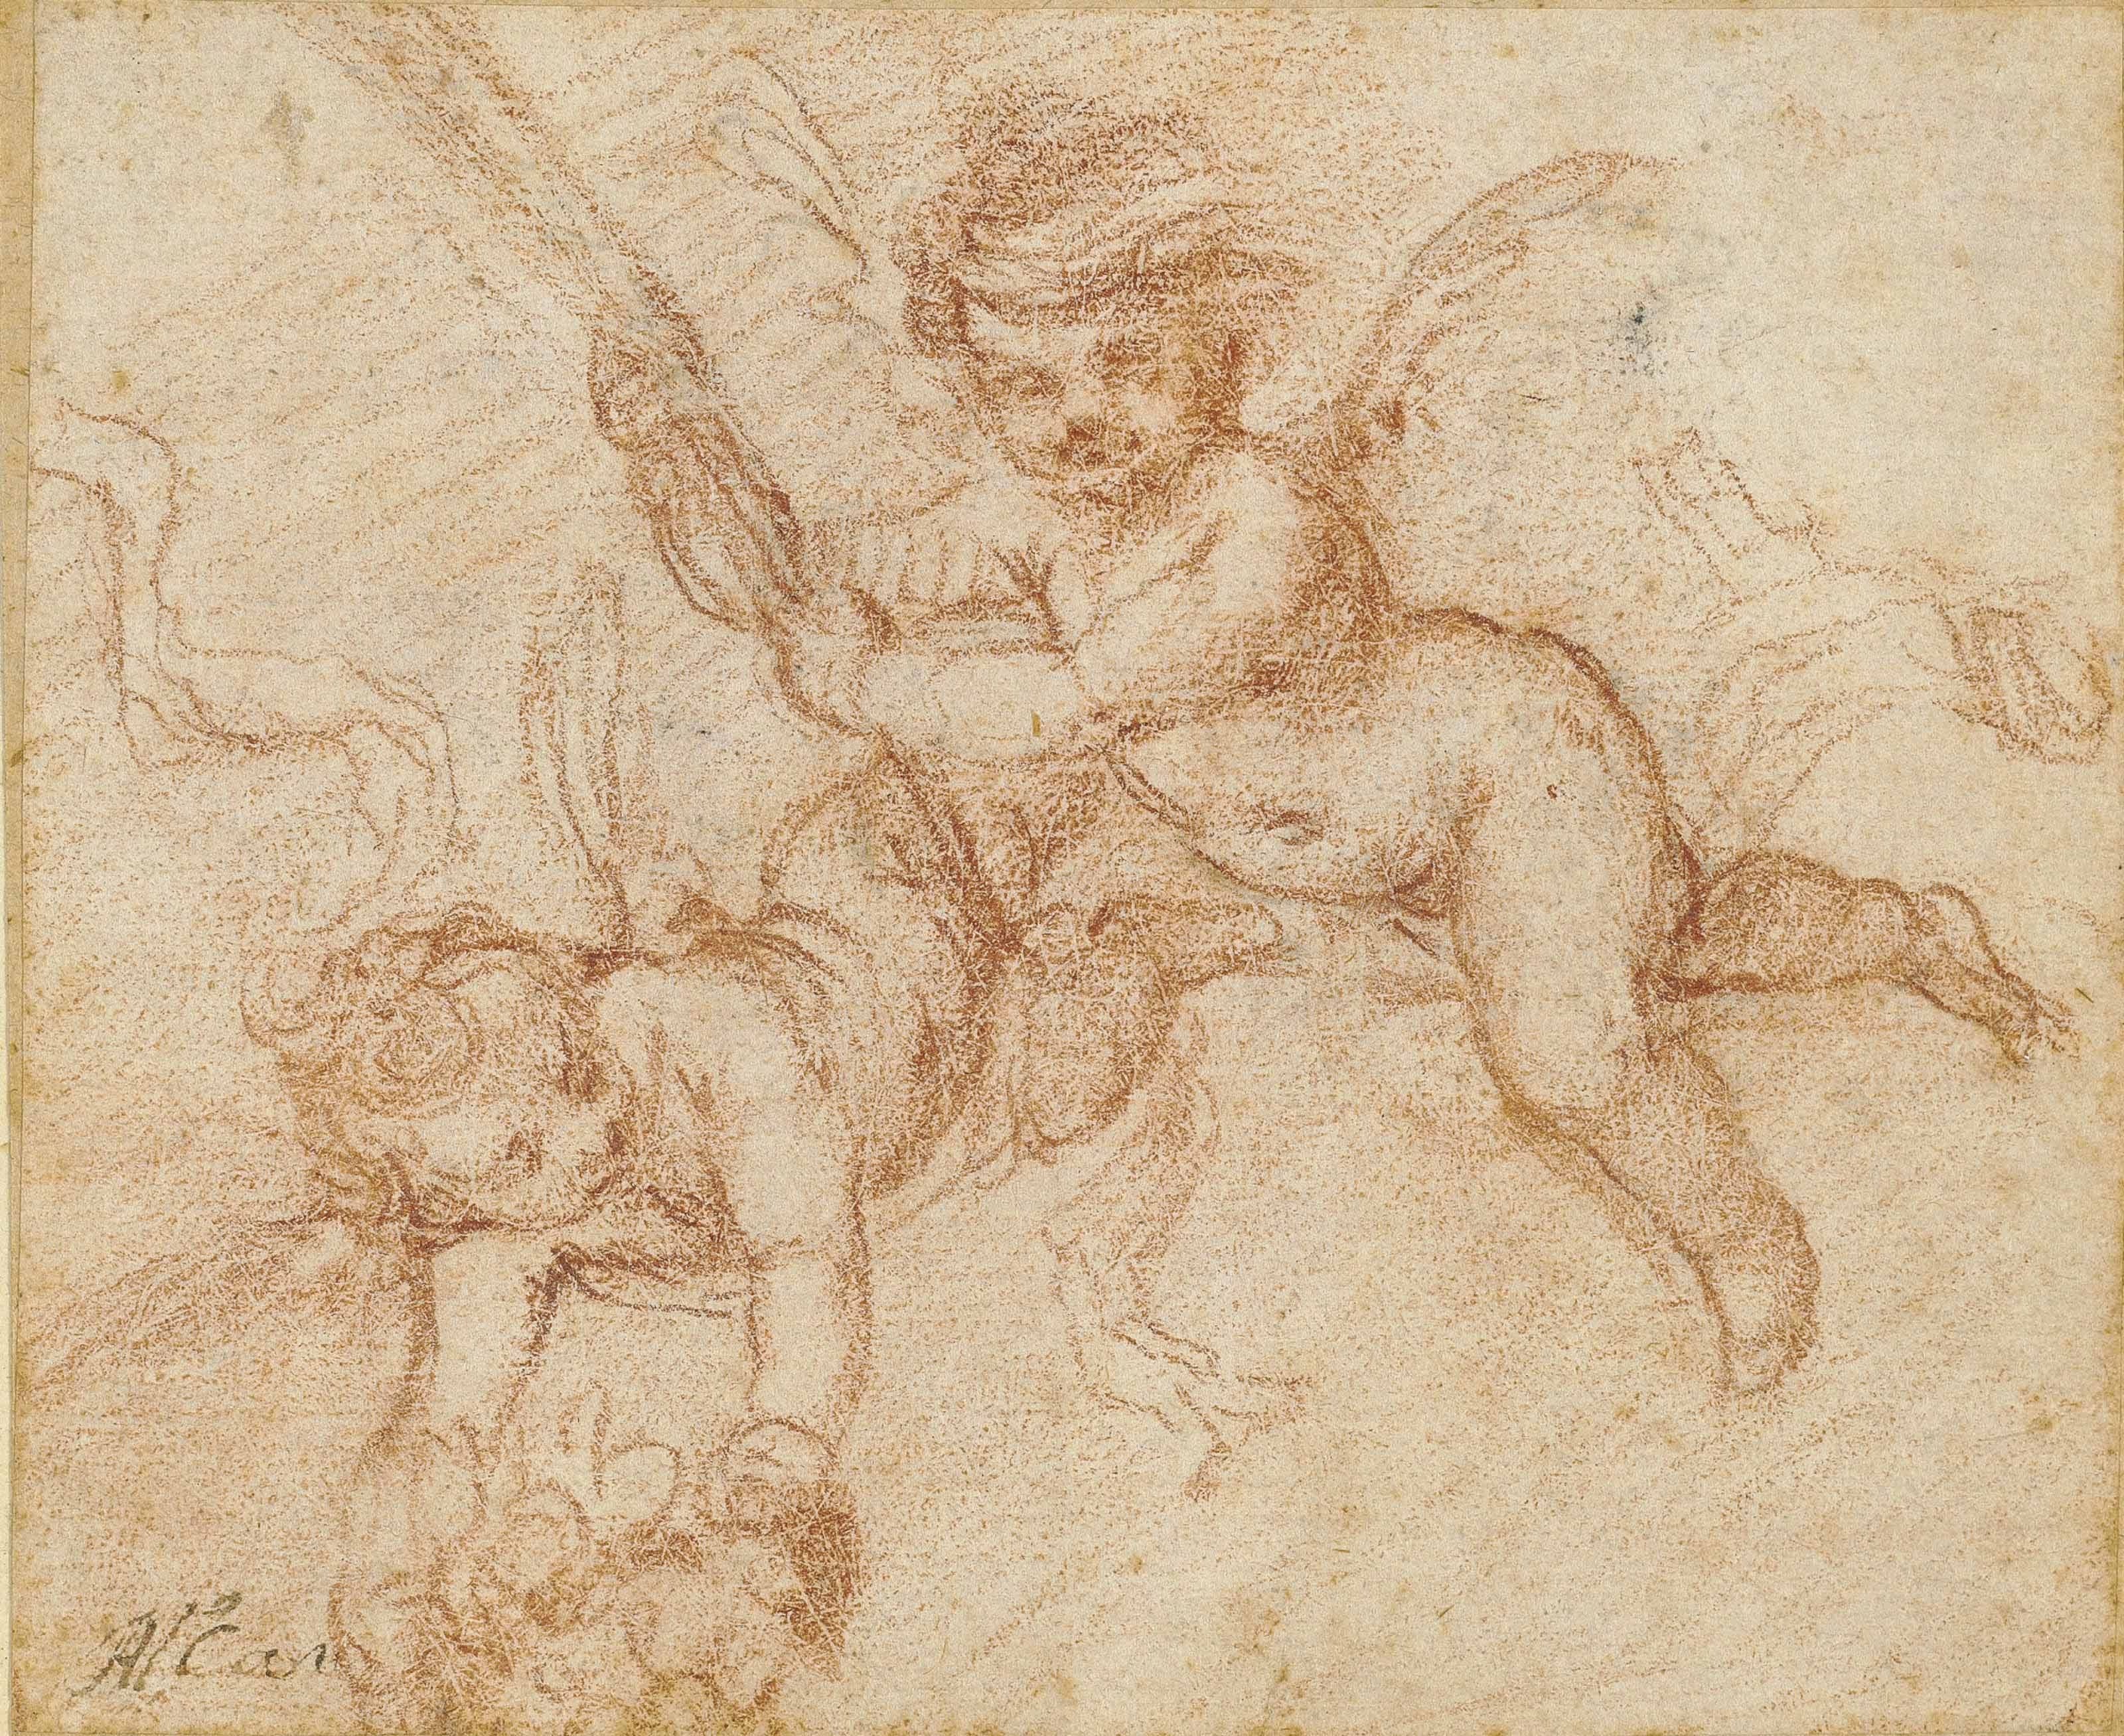 Putti holding a martyr's palm and flowers